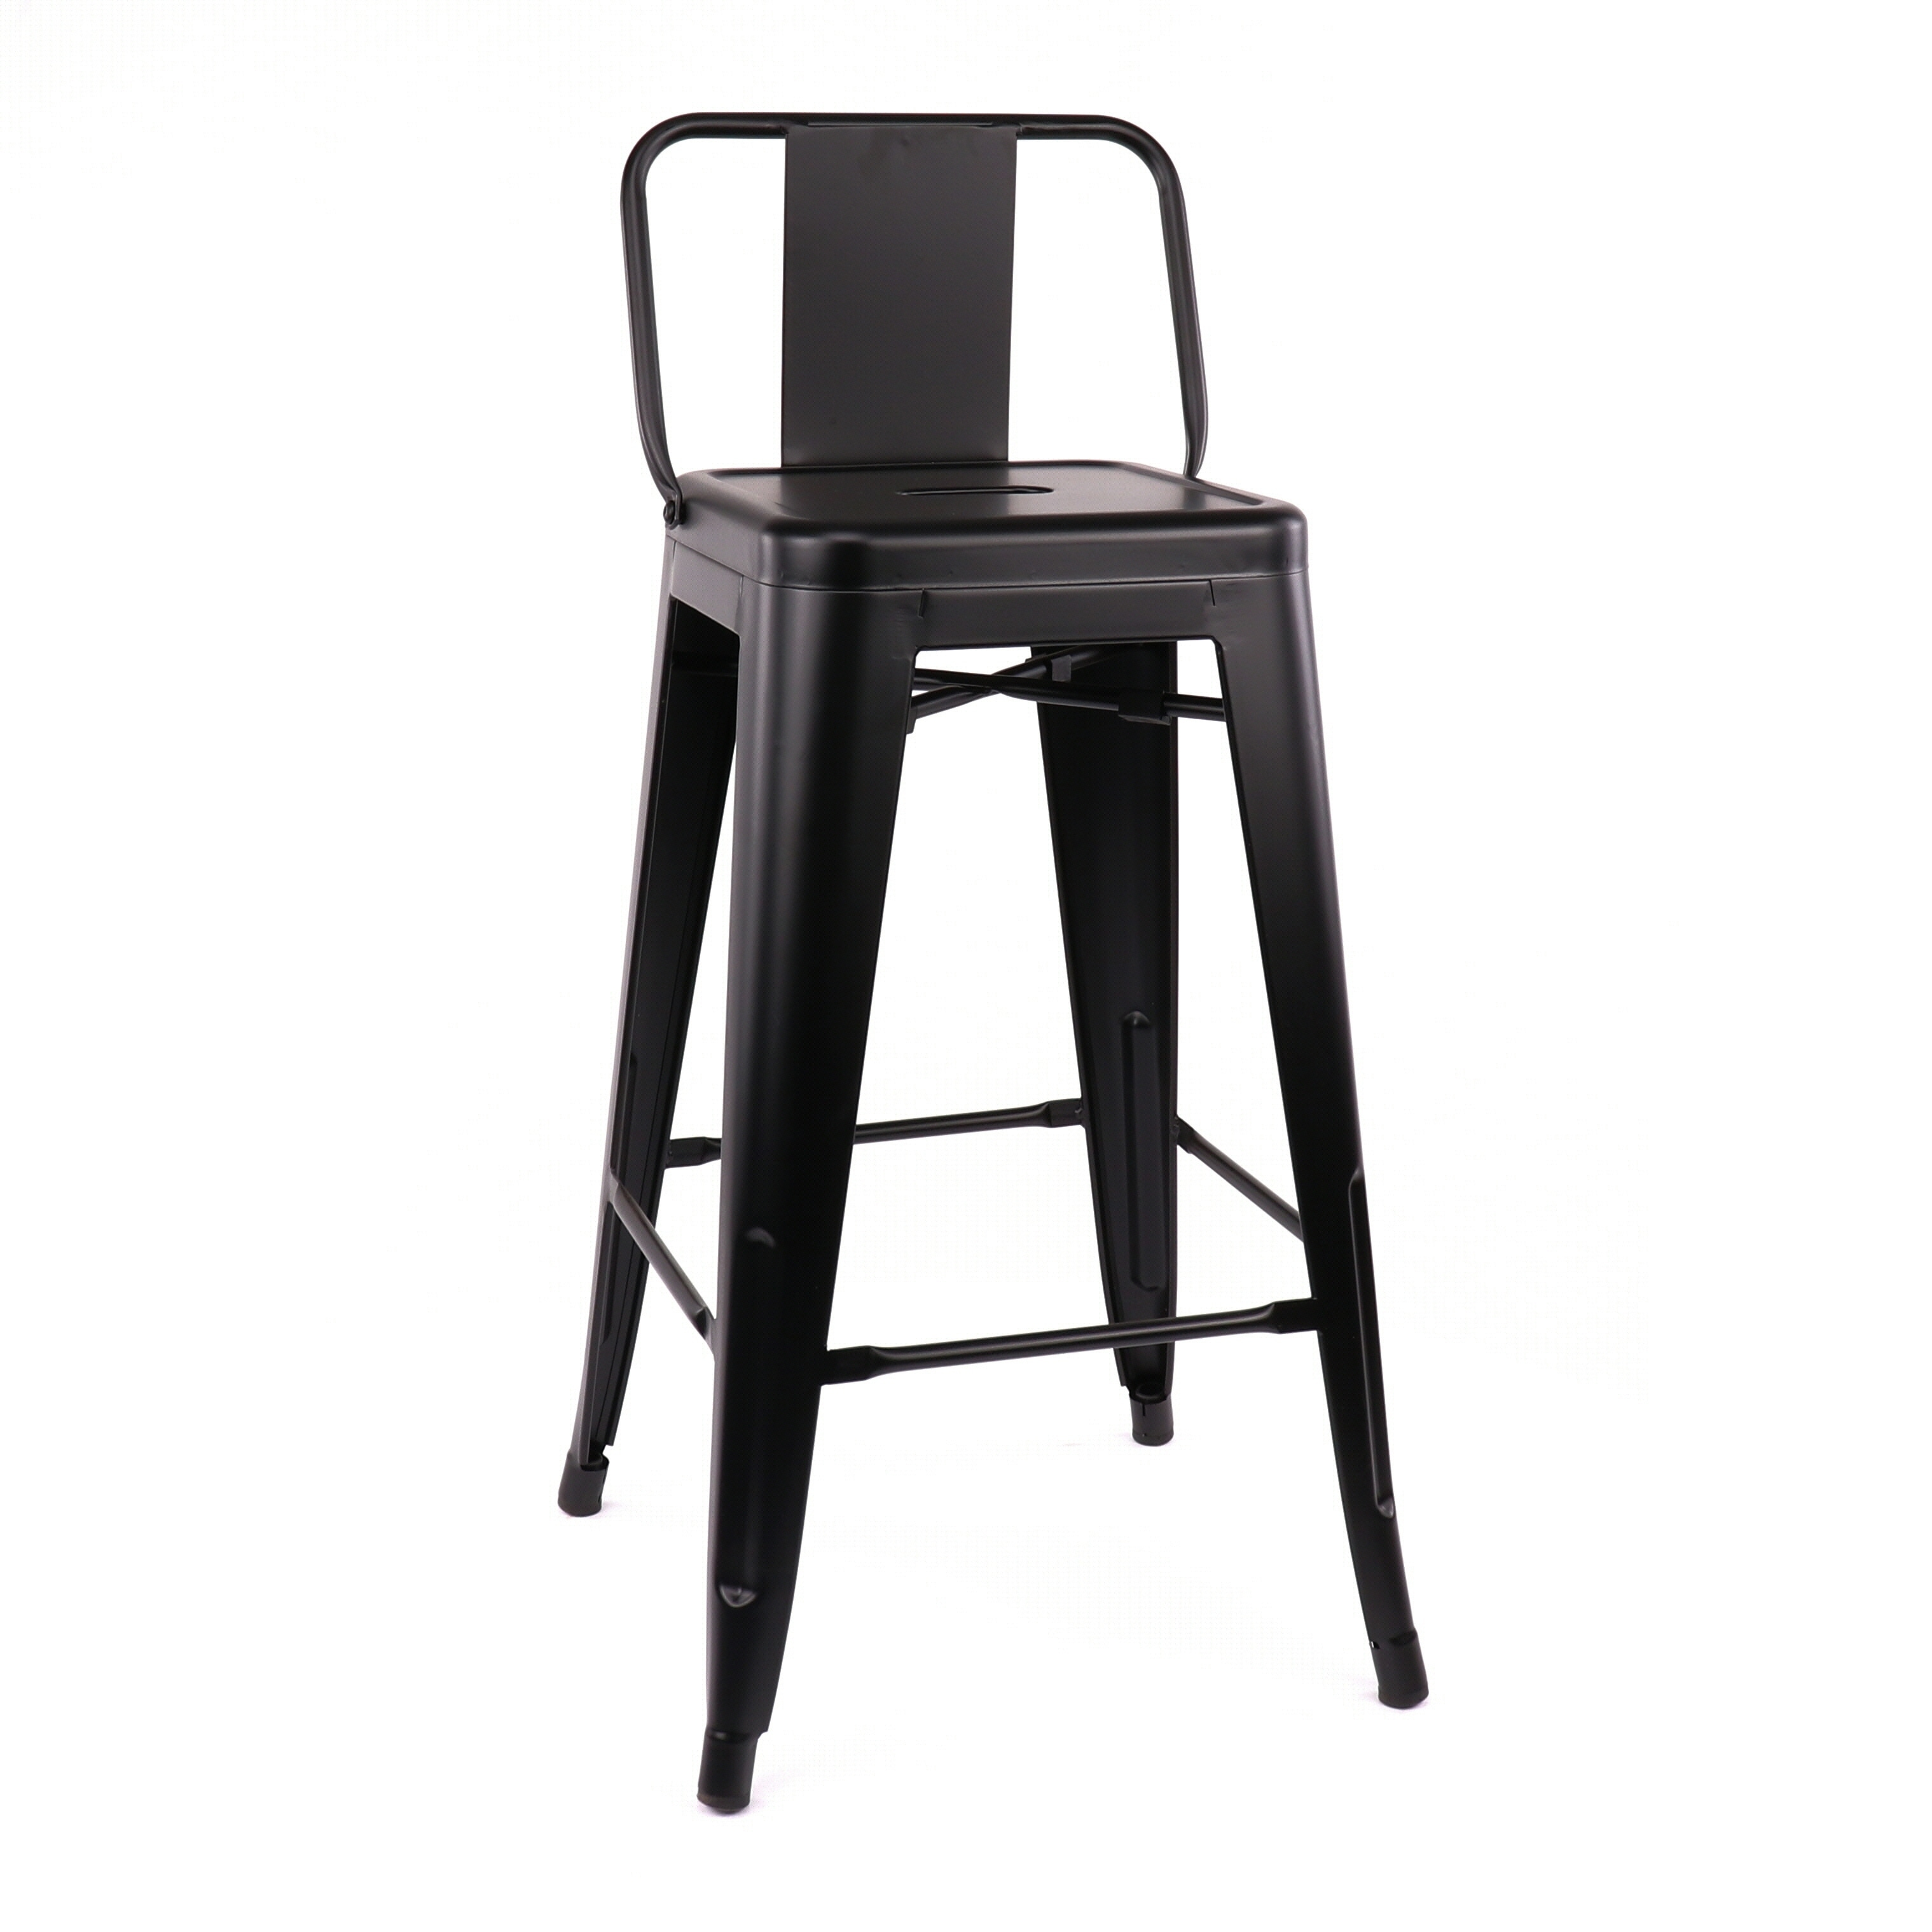 Shop amalfi matte black low back steel counter stool 26 inch set of 4 free shipping today overstock com 21453171